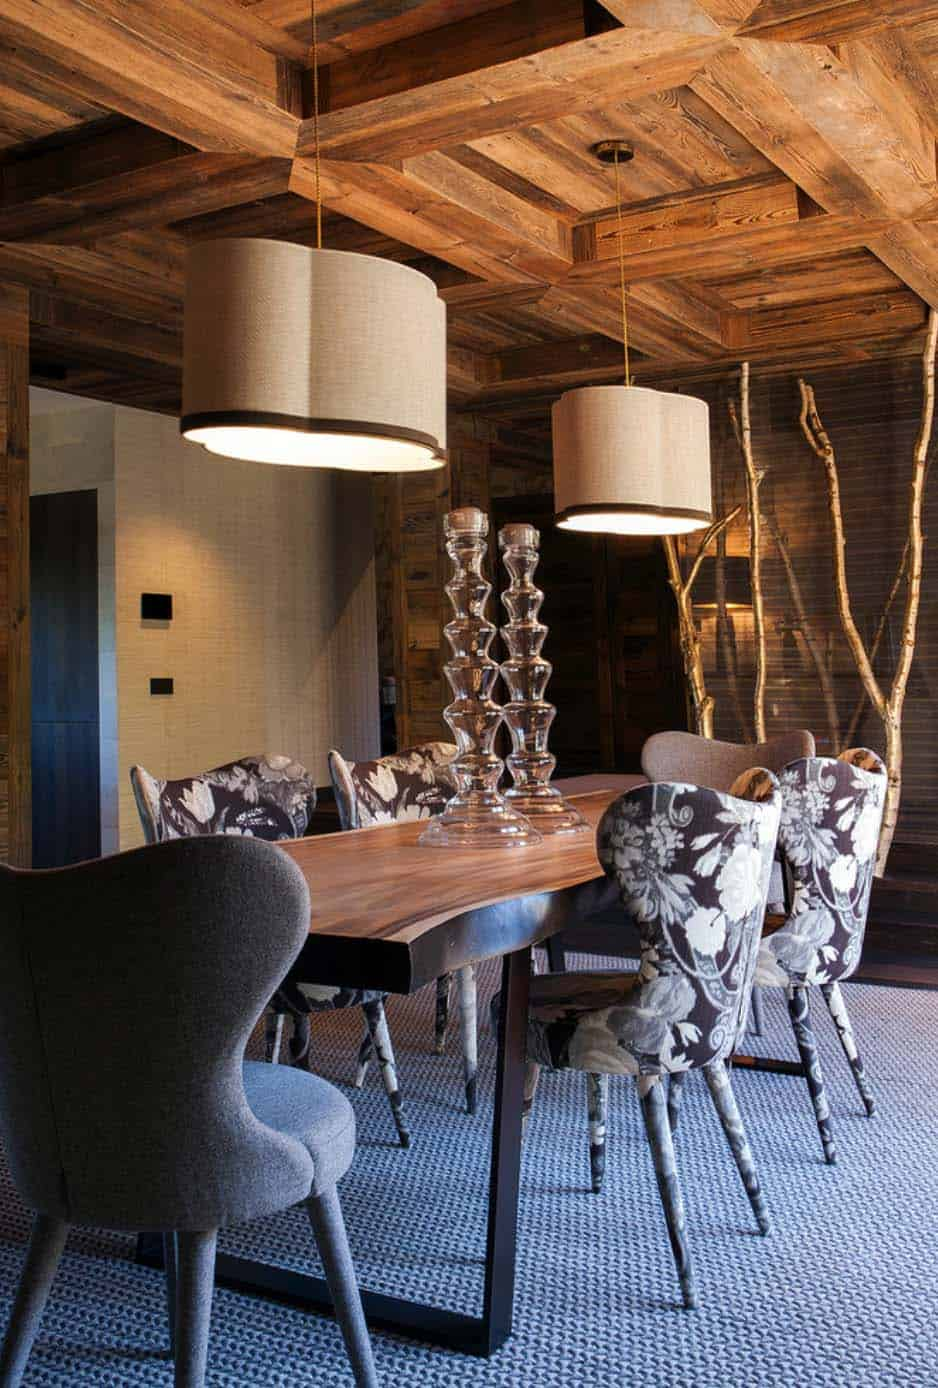 luxury-mountain-chalet-refuge-11-1-kindesign